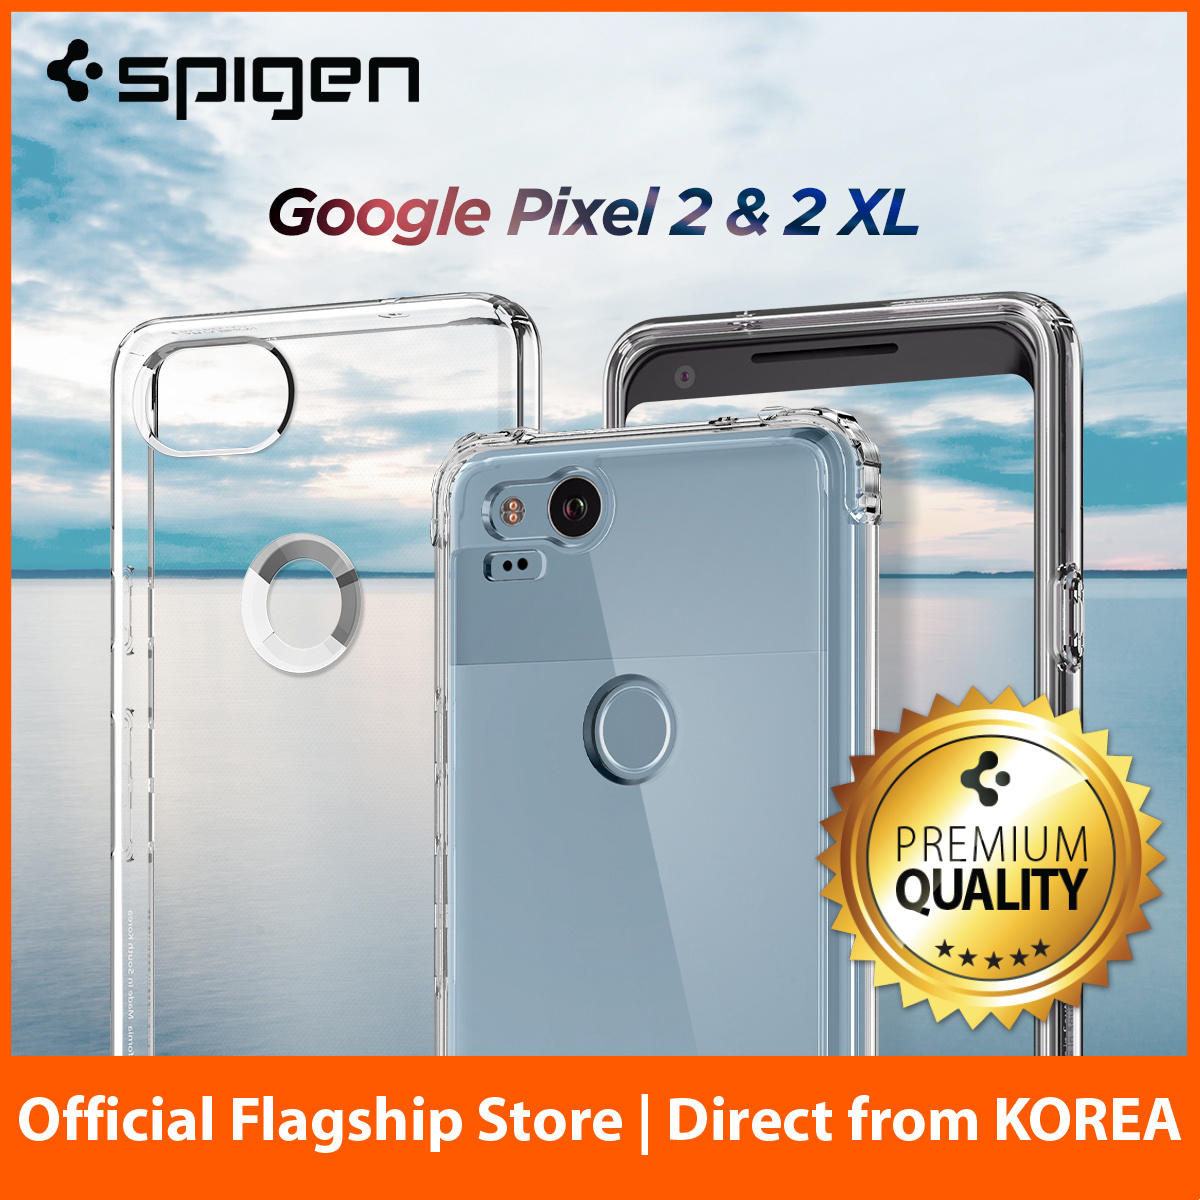 Qoo10 Google Pixel 2 Xl Mobile Accessories Spigen Ipad 97 Case Rugged Armor Original Casing Fit To Viewer